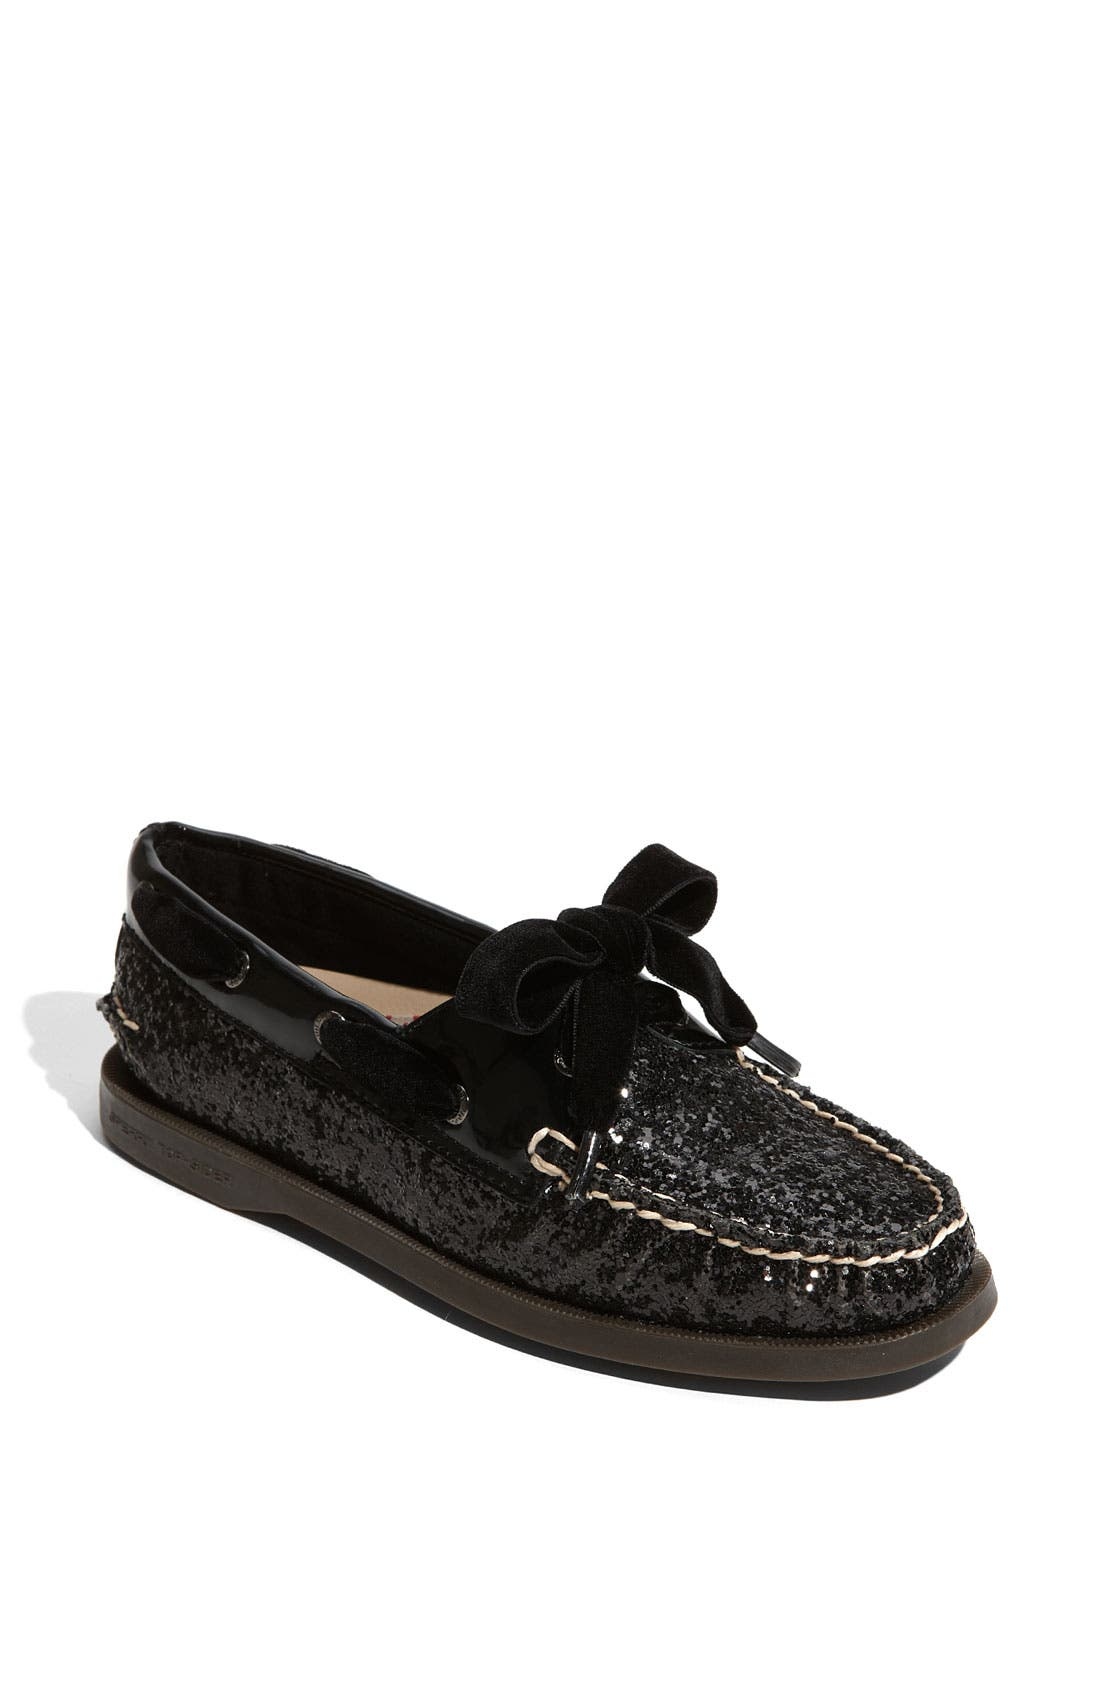 Alternate Image 1 Selected - Sperry Top-Sider® 'Authentic Original Glitter' Boat Shoe